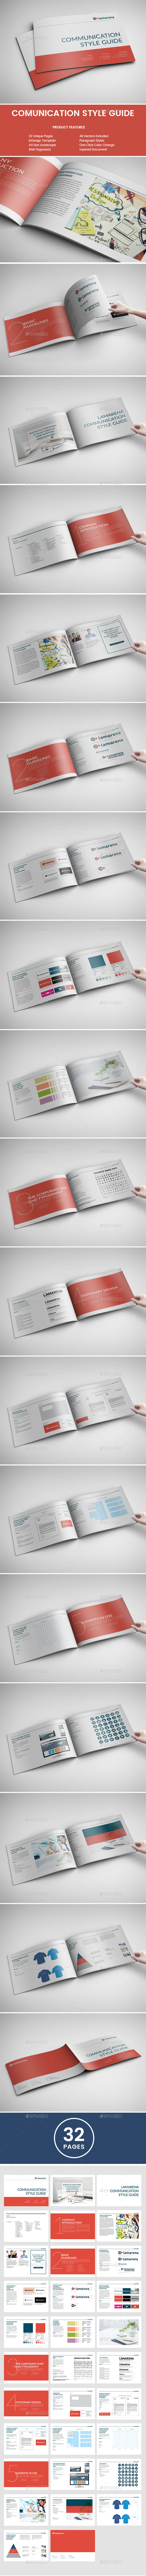 Communication Style Guide - Brochures Print Templates